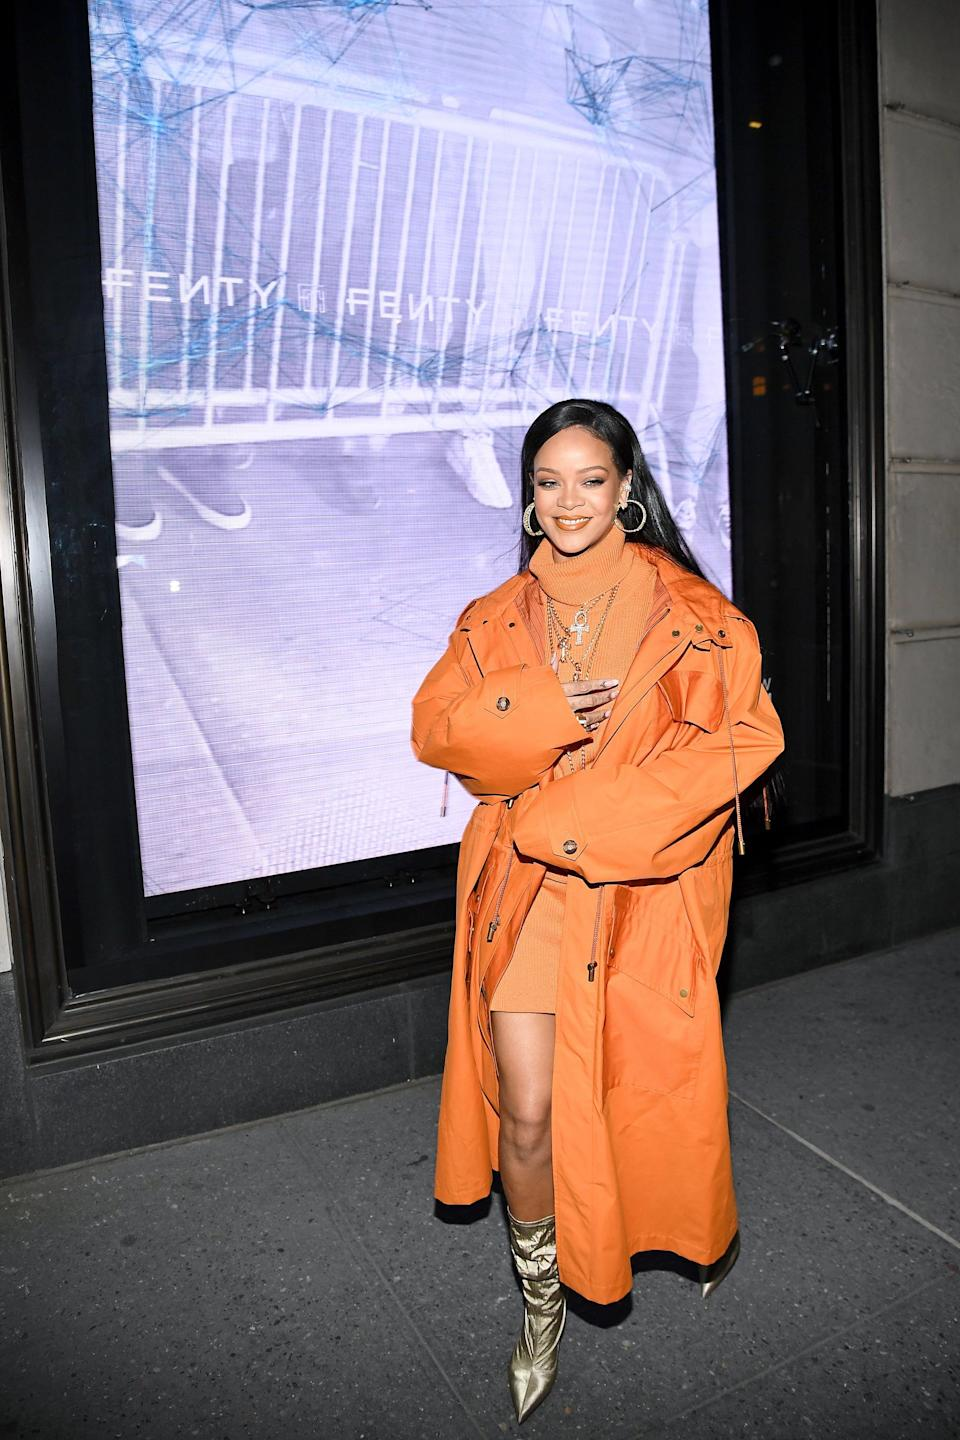 NEW YORK, NEW YORK - FEBRUARY 07: Robyn Rihanna Fenty and Linda Fargo celebrate the launch of FENTY at Bergdorf Goodman at Bergdorf Goodman on February 07, 2020 in New York City. (Photo by Dimitrios Kambouris/Getty Images for Bergdorf Goodman)